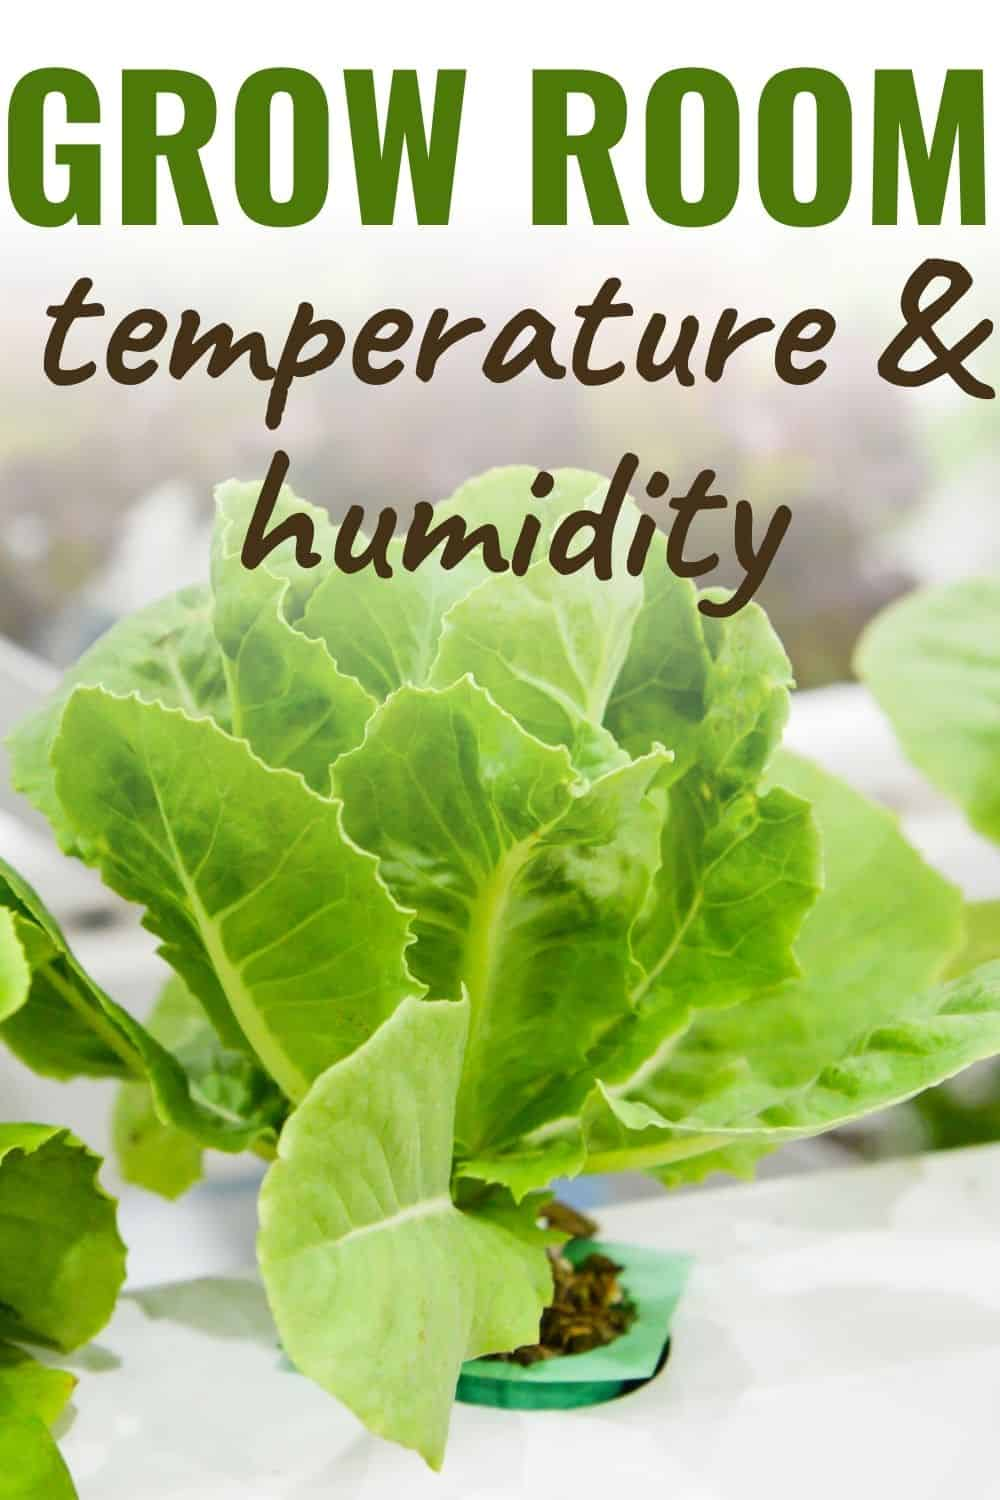 Grow room temperature and humidity